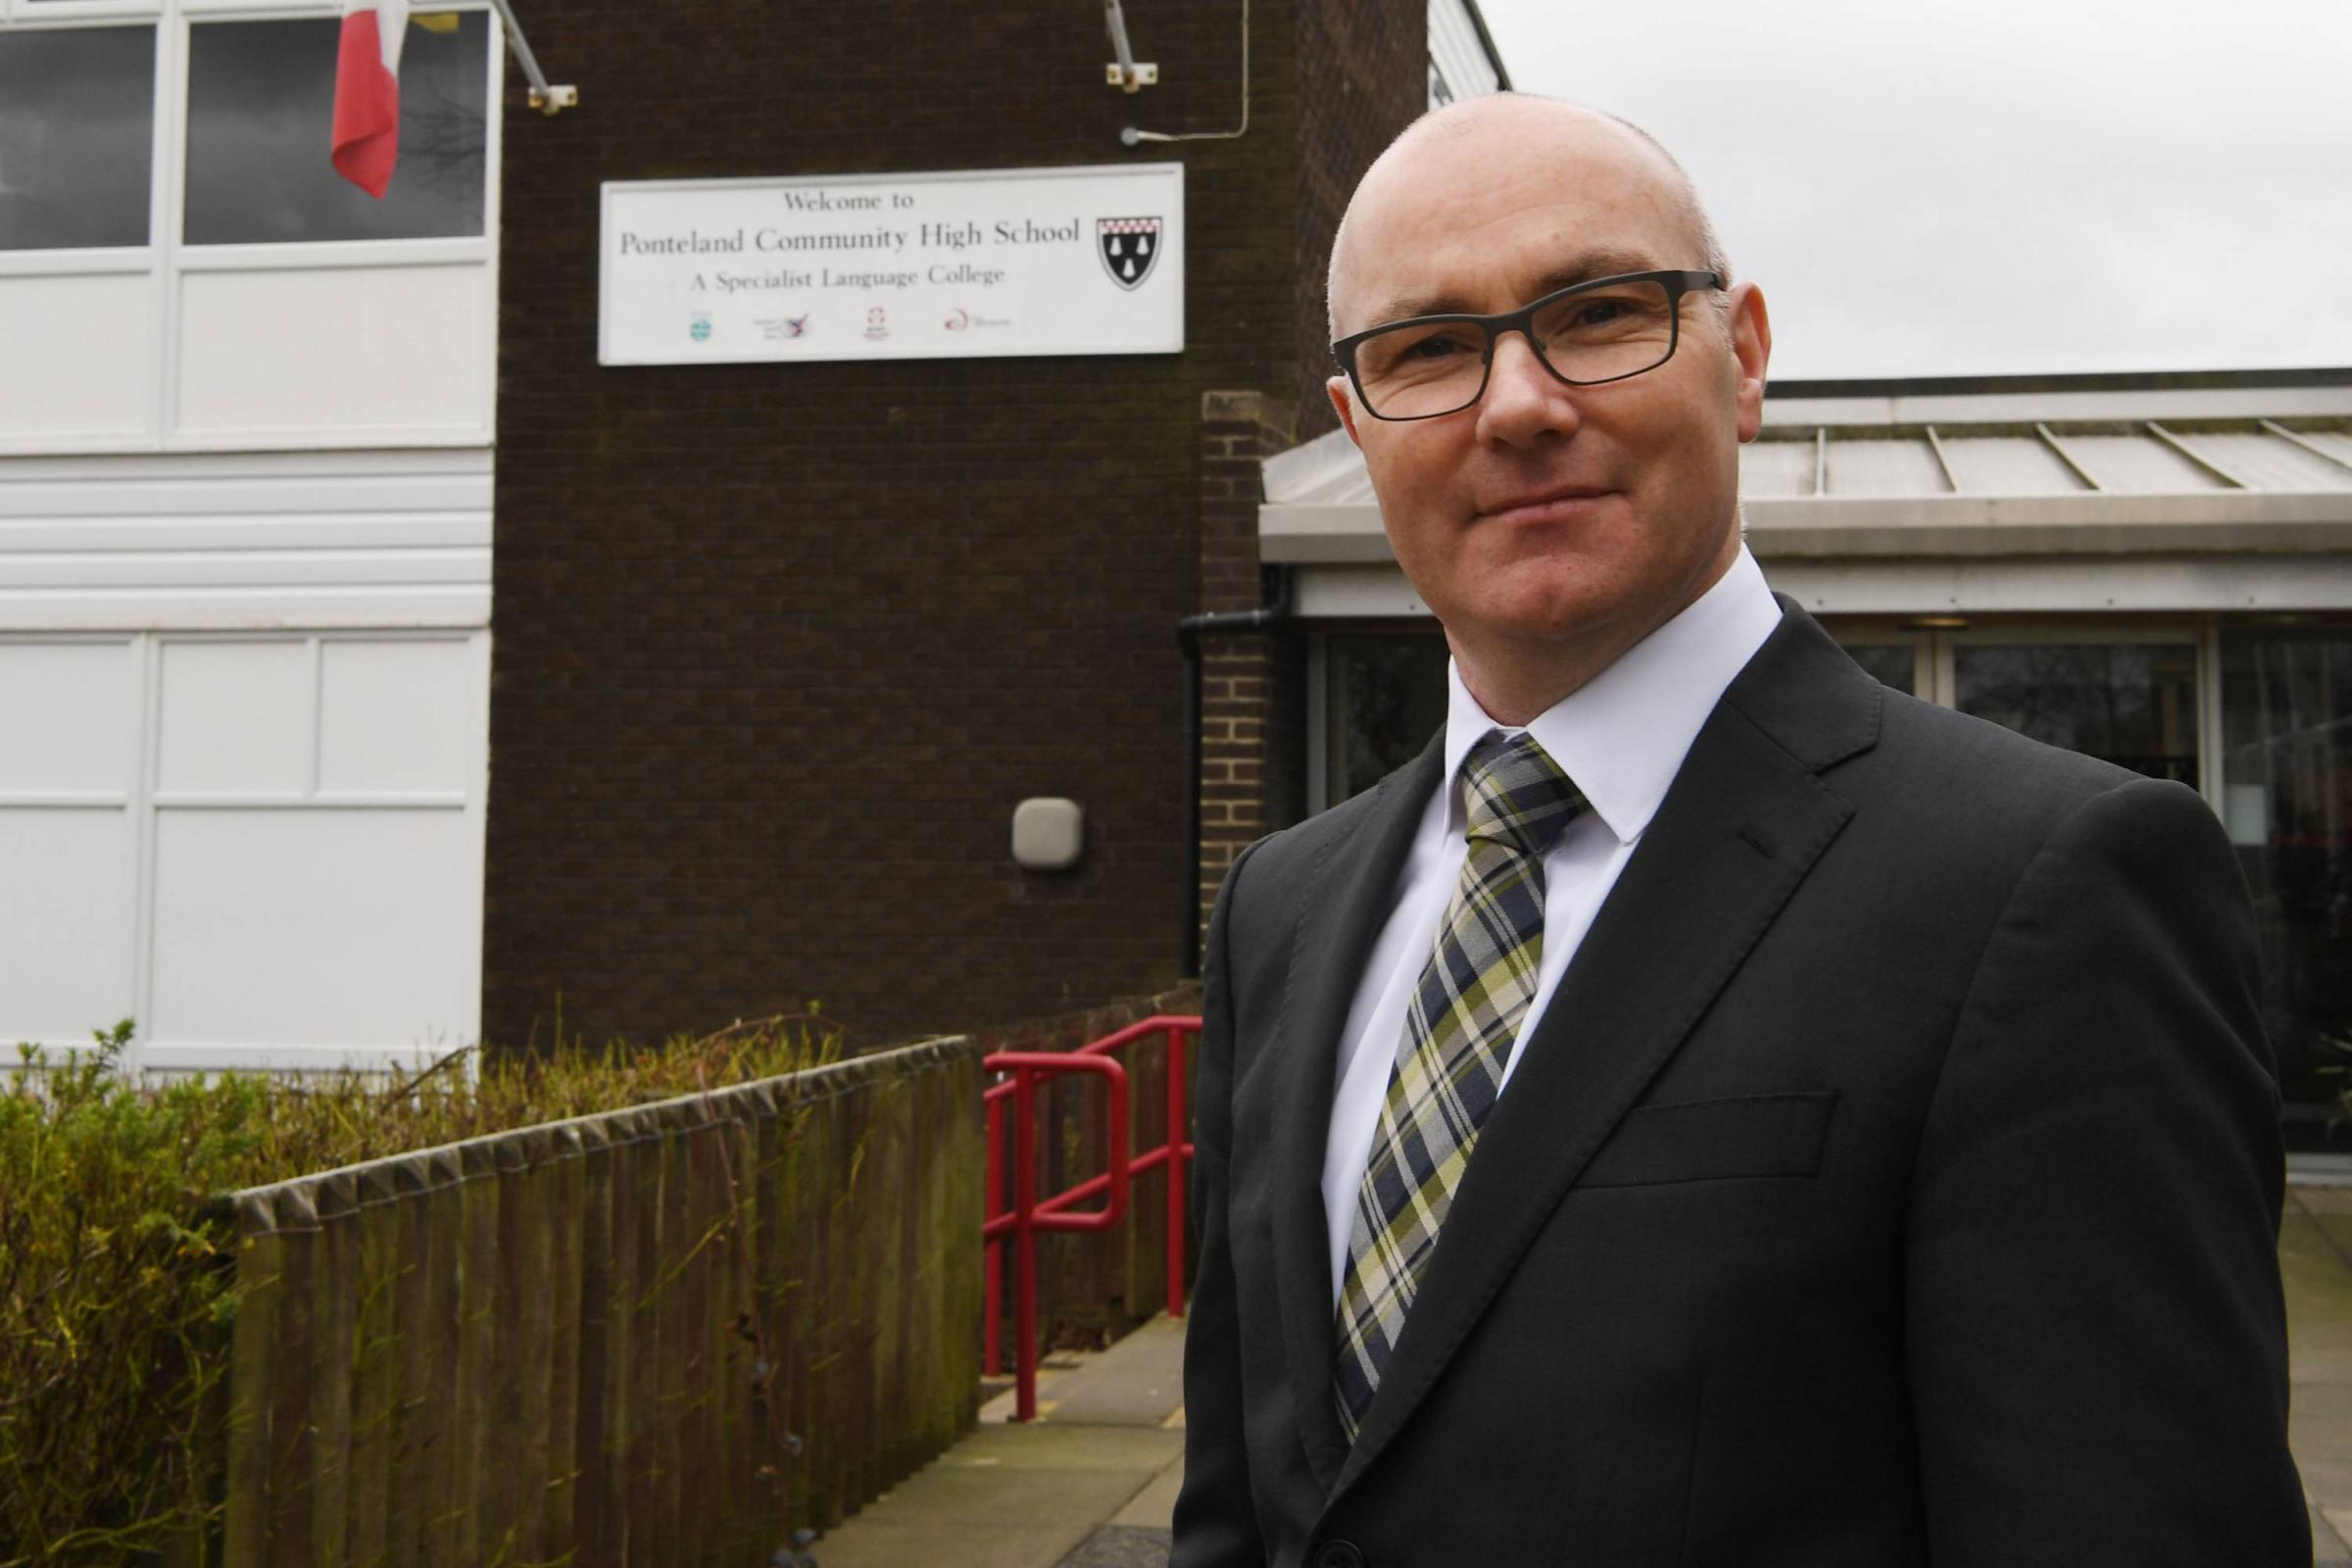 Headteacher Kieran McGrane at Ponteland High School, where exclusions have been kept to a minimum.